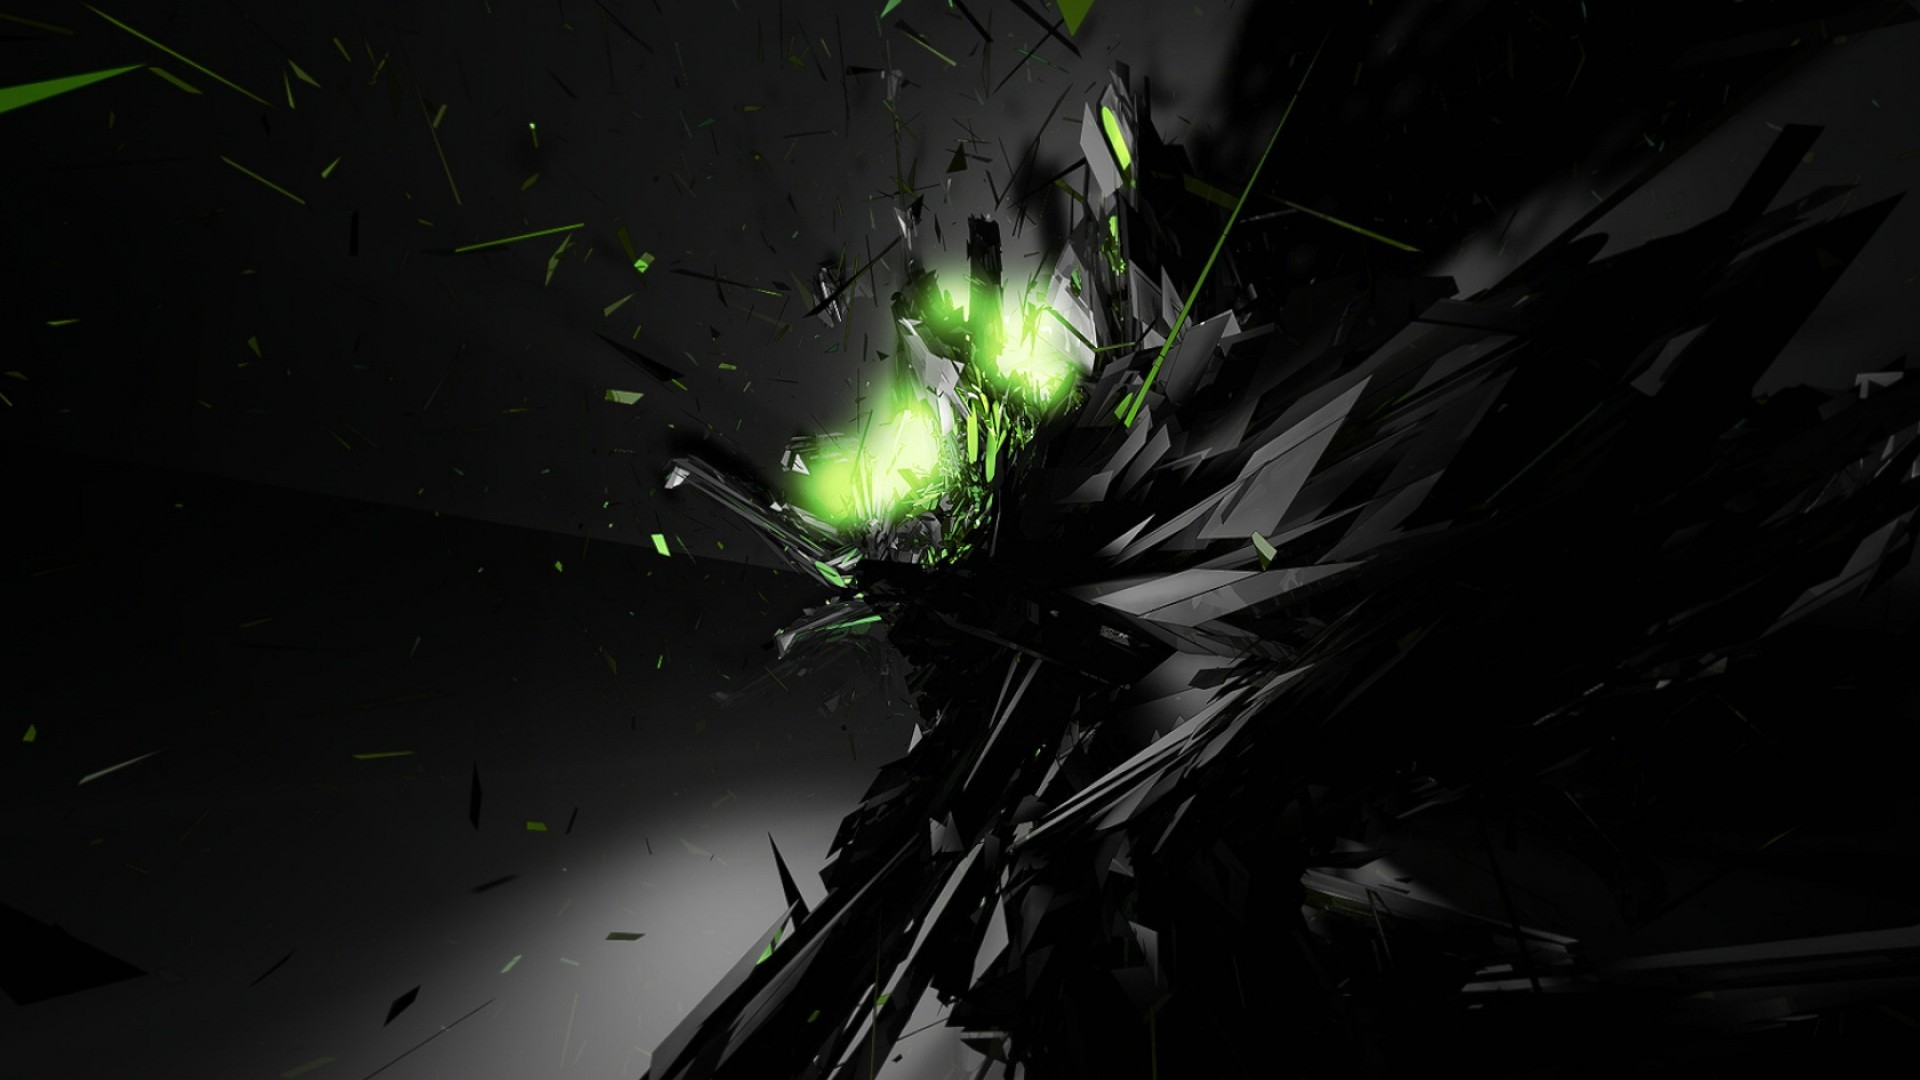 1920x1080 Black Abstract Green Glow Desktop Wallpaper